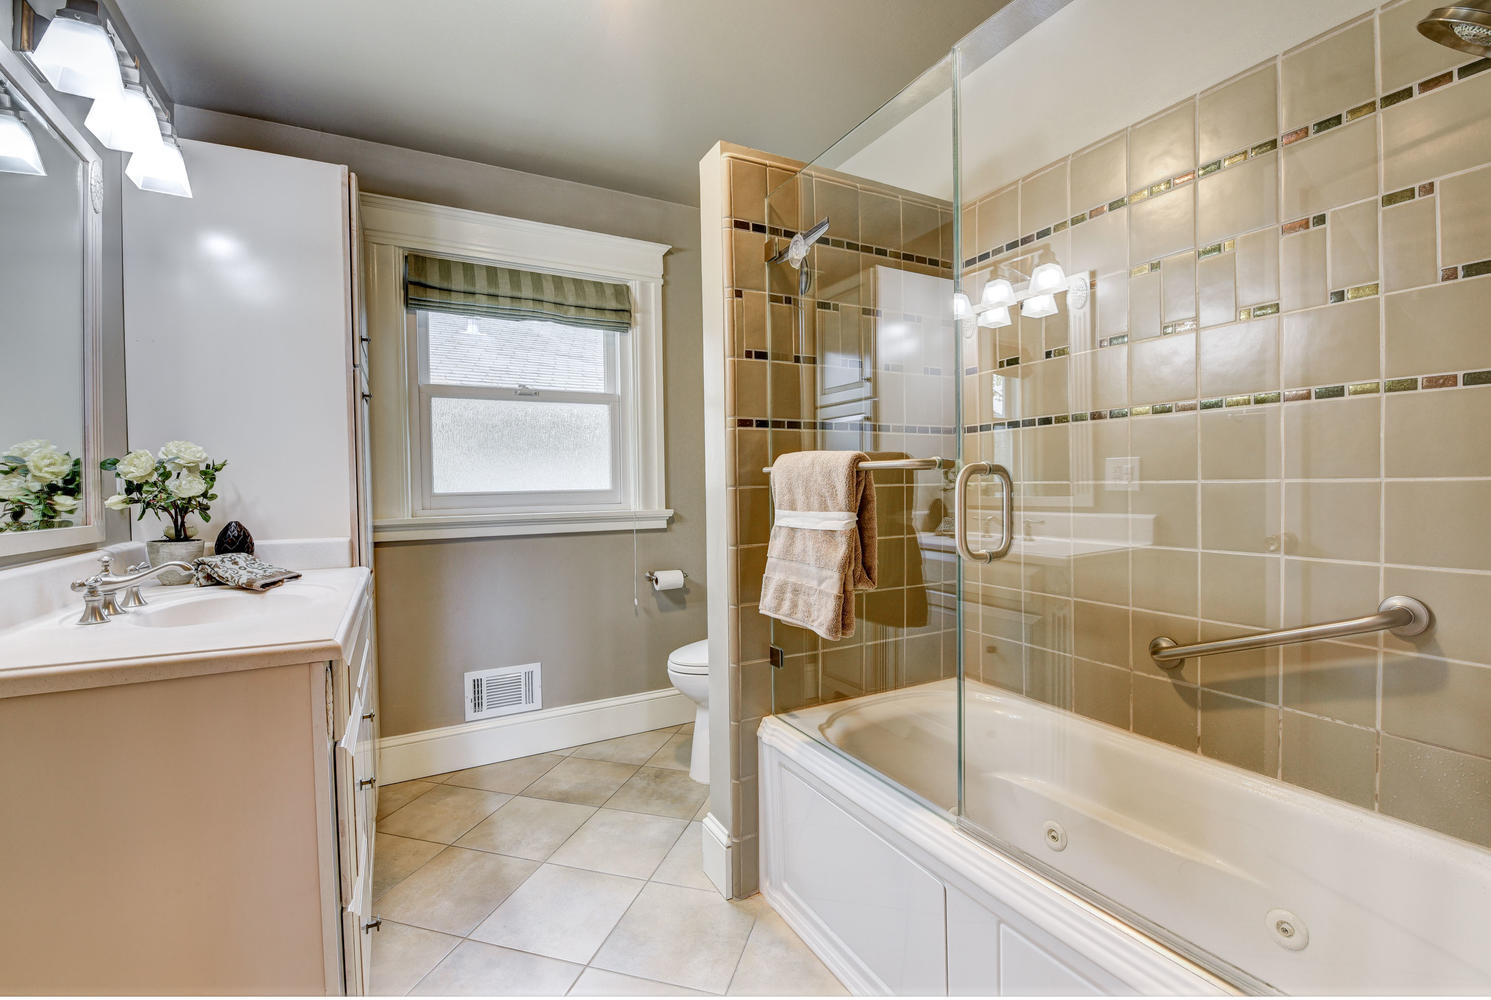 713 South I St-small-017-8-Bathroom-666×447-72dpi